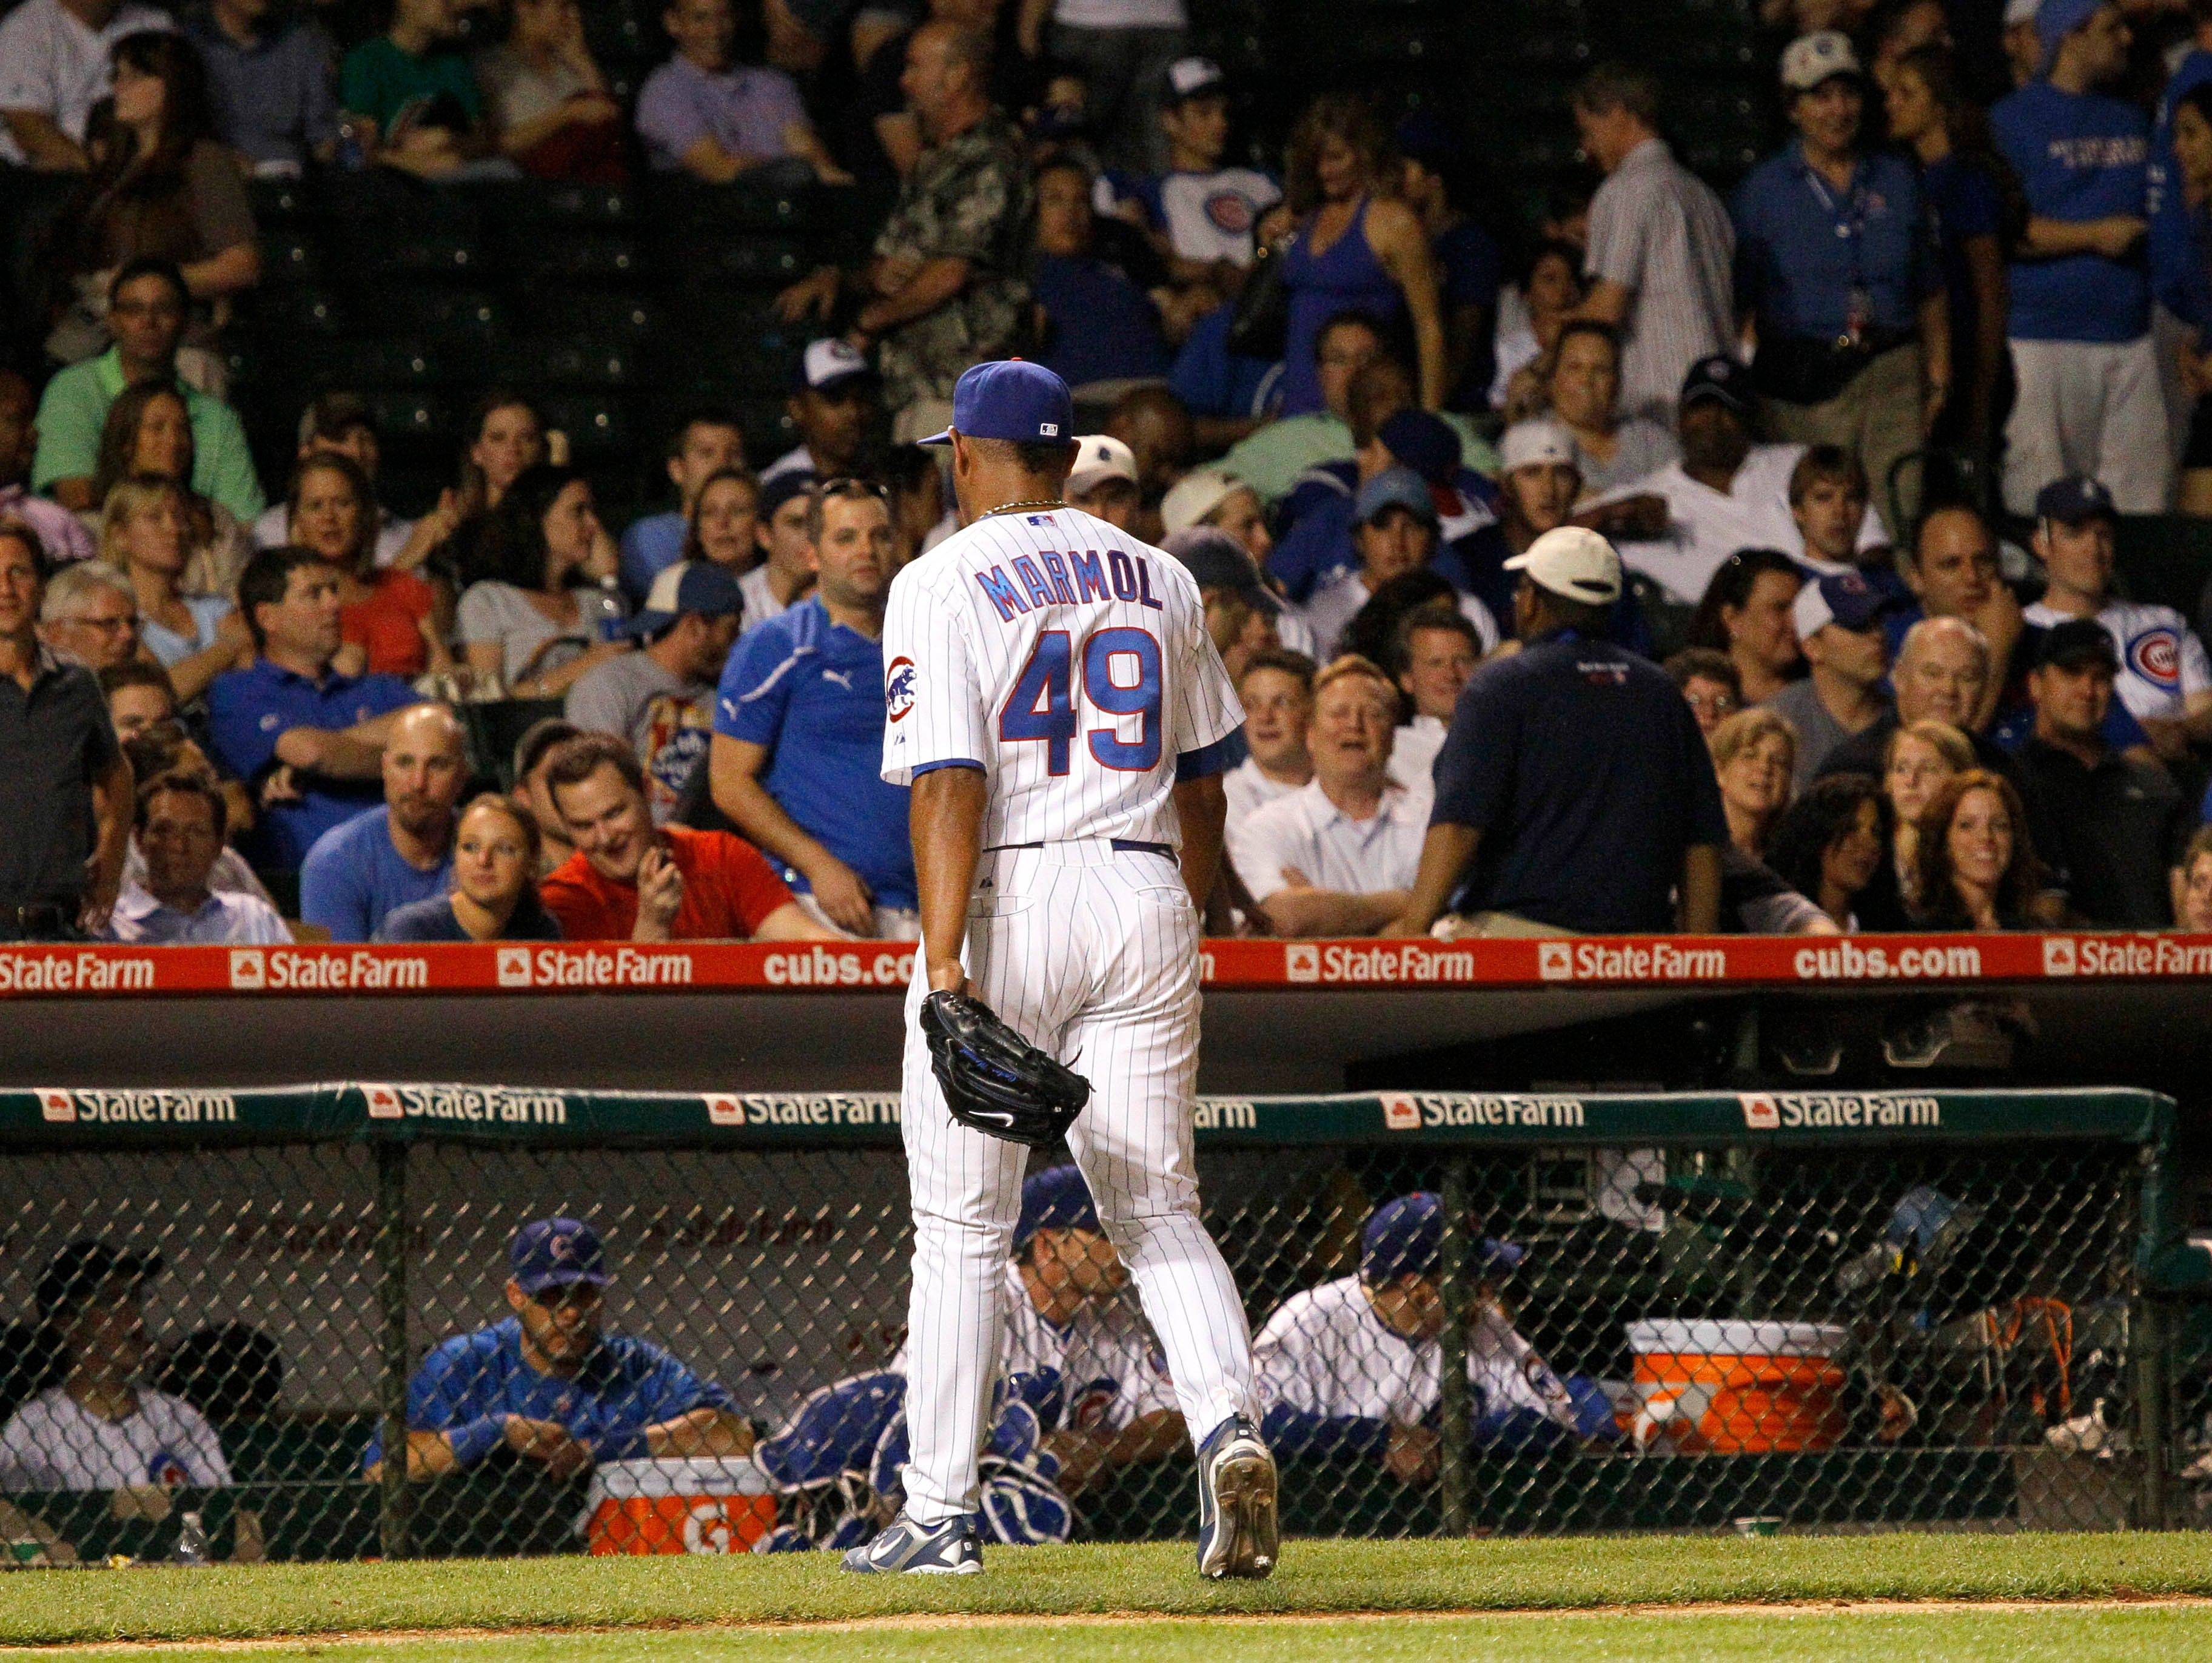 Cubs closer Carlos Marmol walks off the field after giving up 6 runs in the ninth inning Tuesday night.